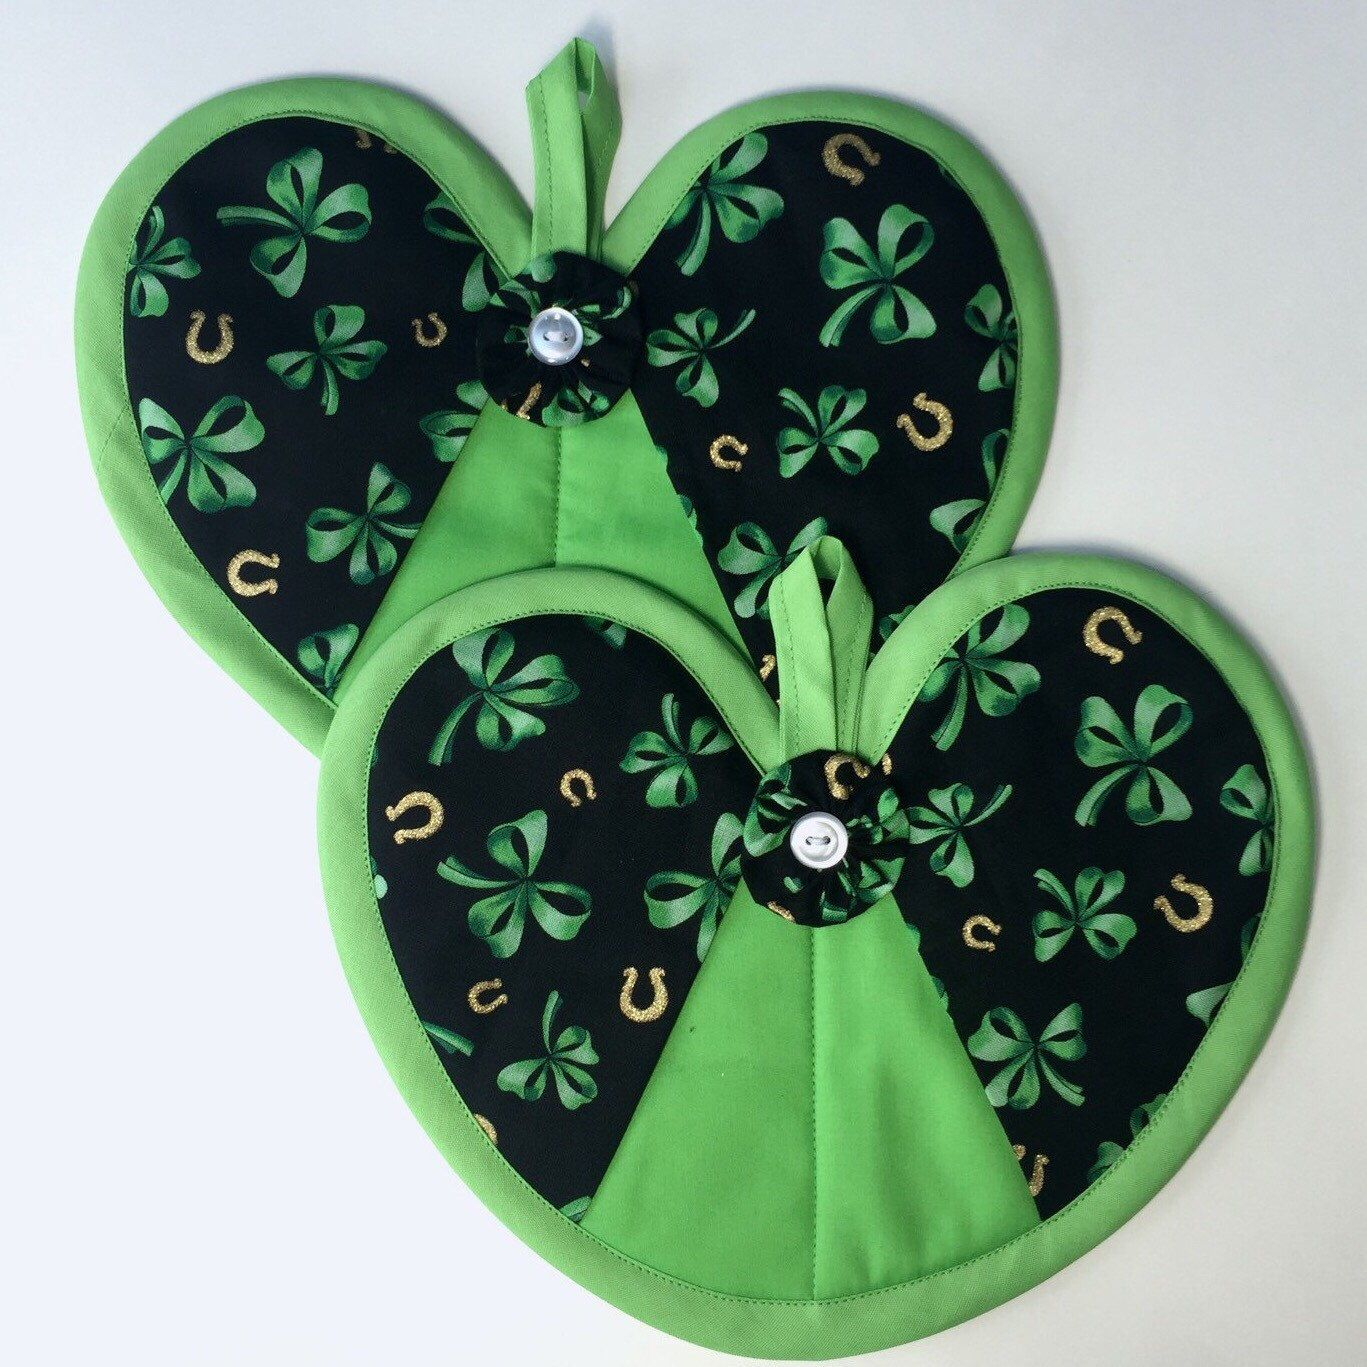 St. Patrick's day heart hot pad pair found in my Etsy shop https://www.etsy.com/listing/268861640/st-patricks-day-three-leaf-clover-and  Gold horse shoes, 3 leaf clovers, lucky, St pattys day